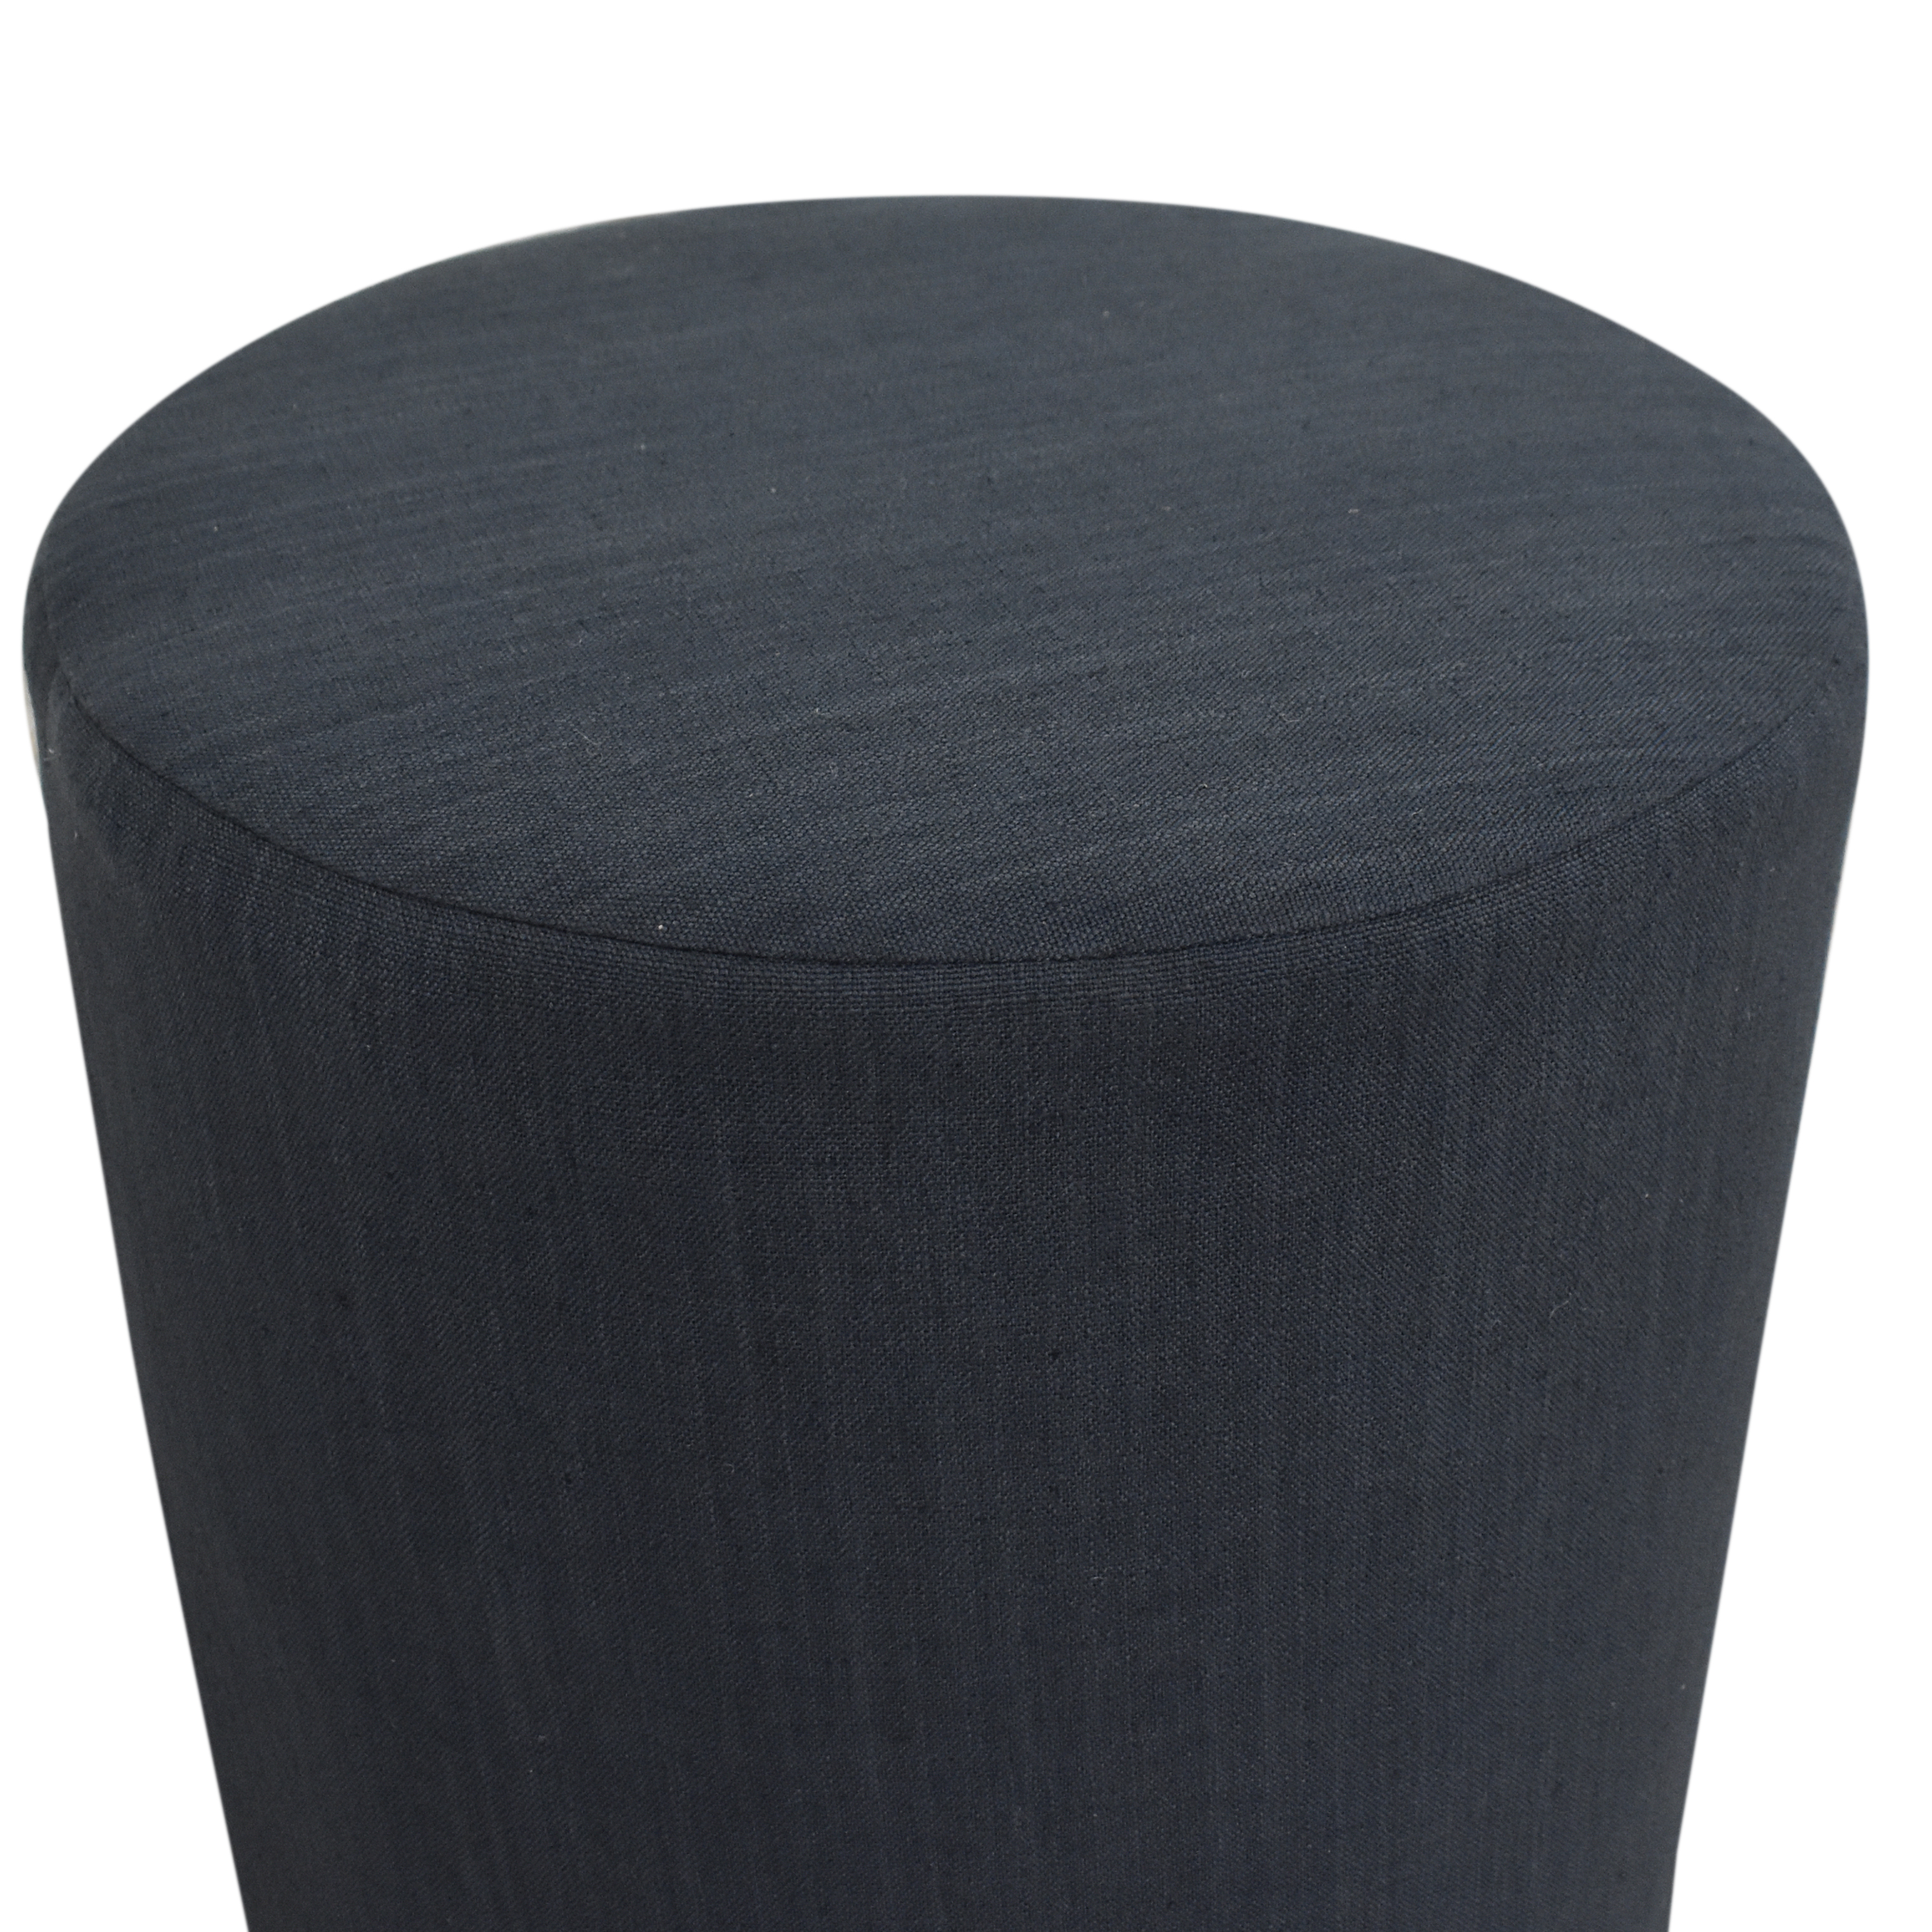 The Inside The Inside Drum Ottoman price